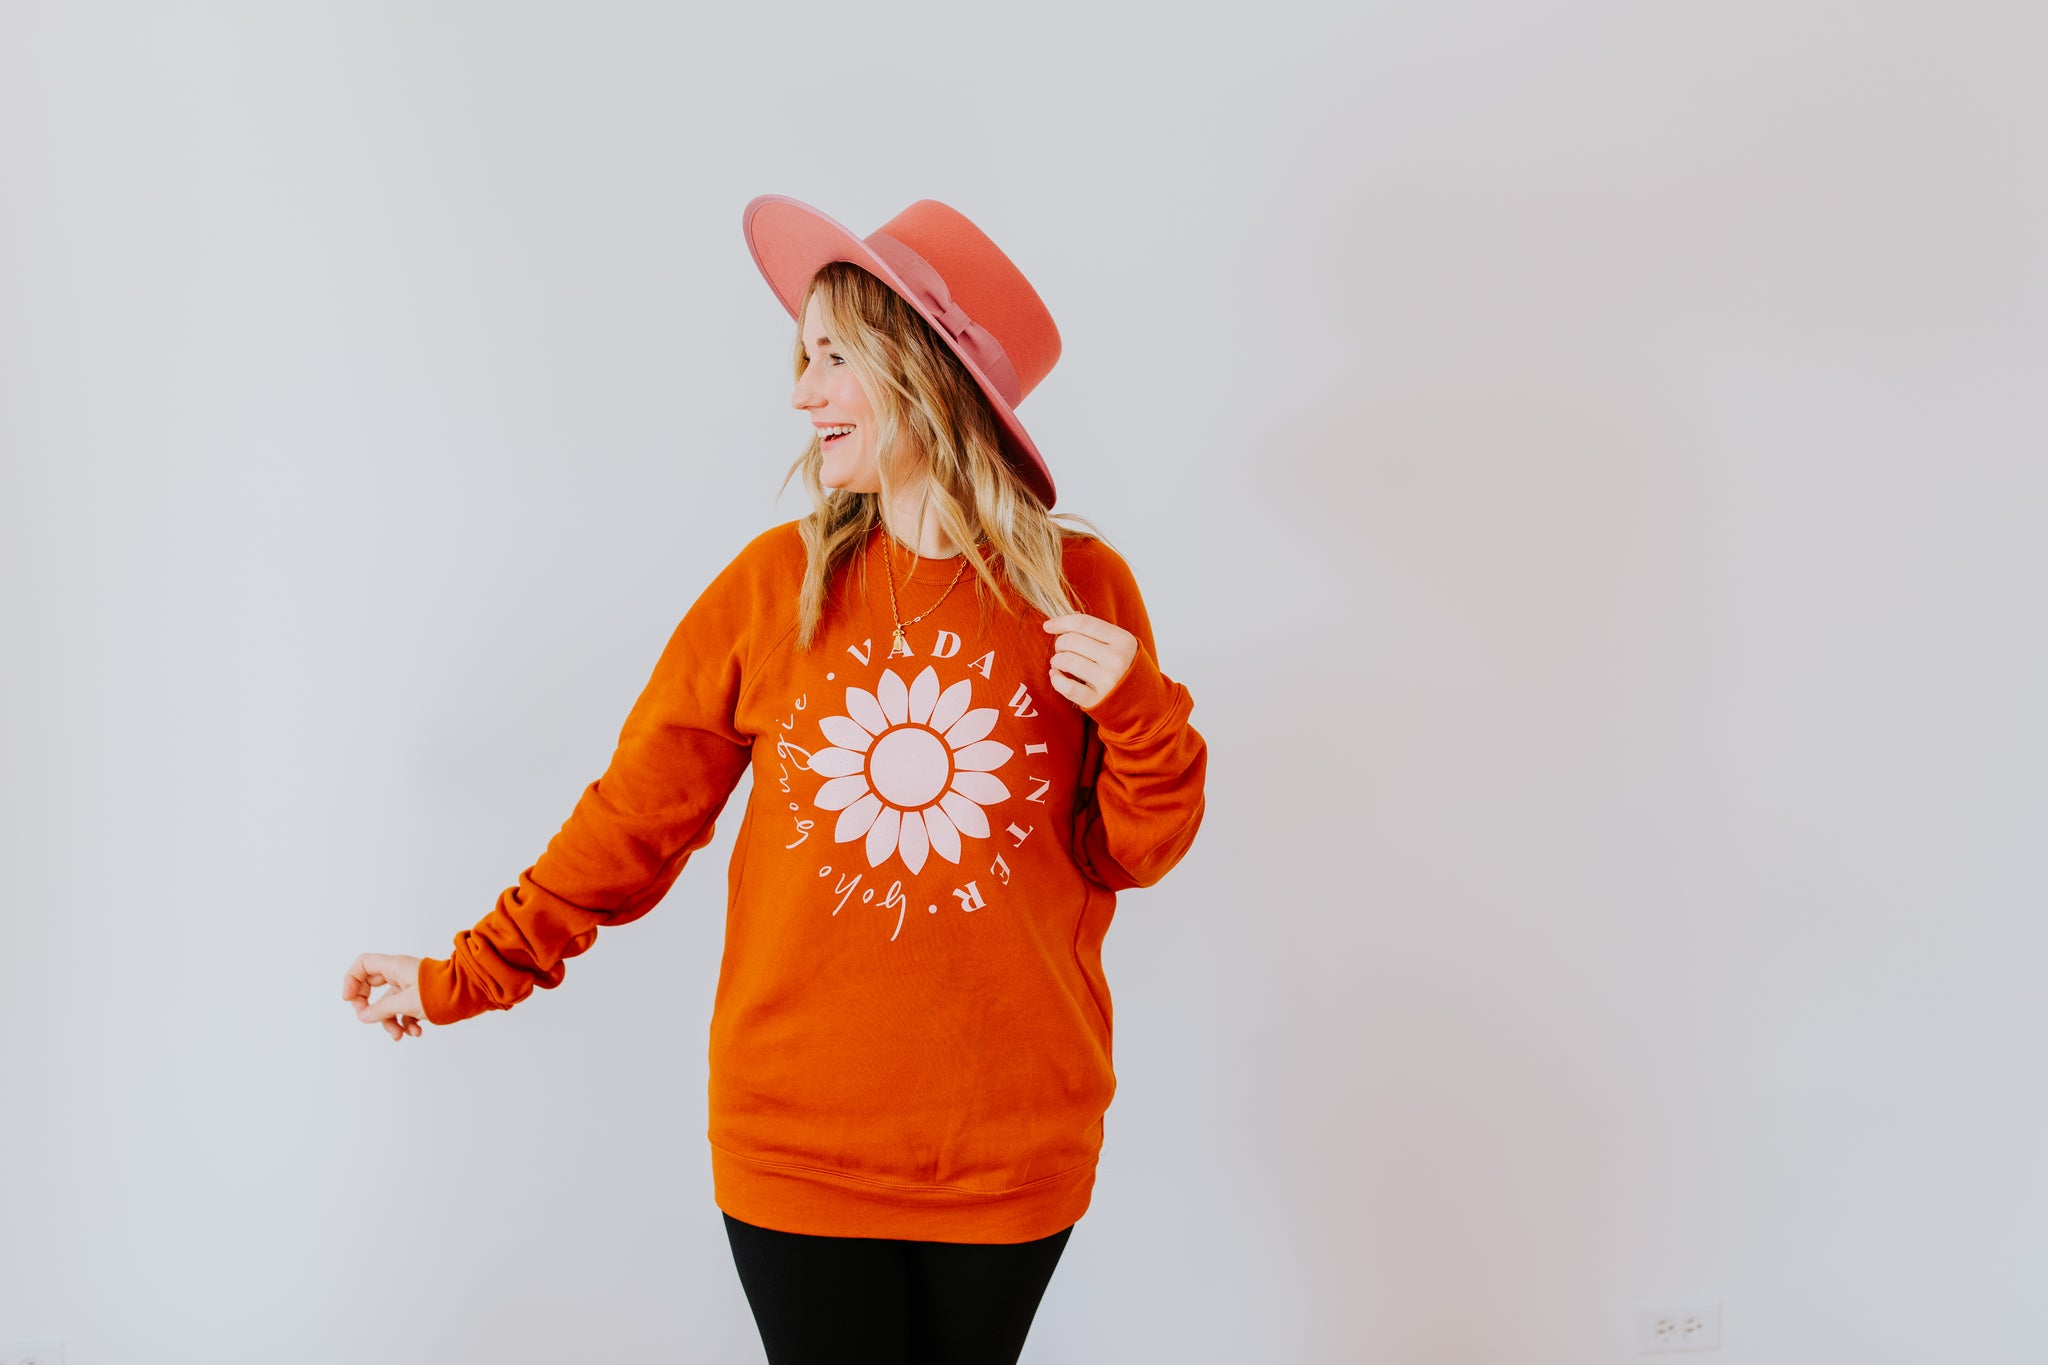 Boho Bougie Vada Winter Sweatshirt